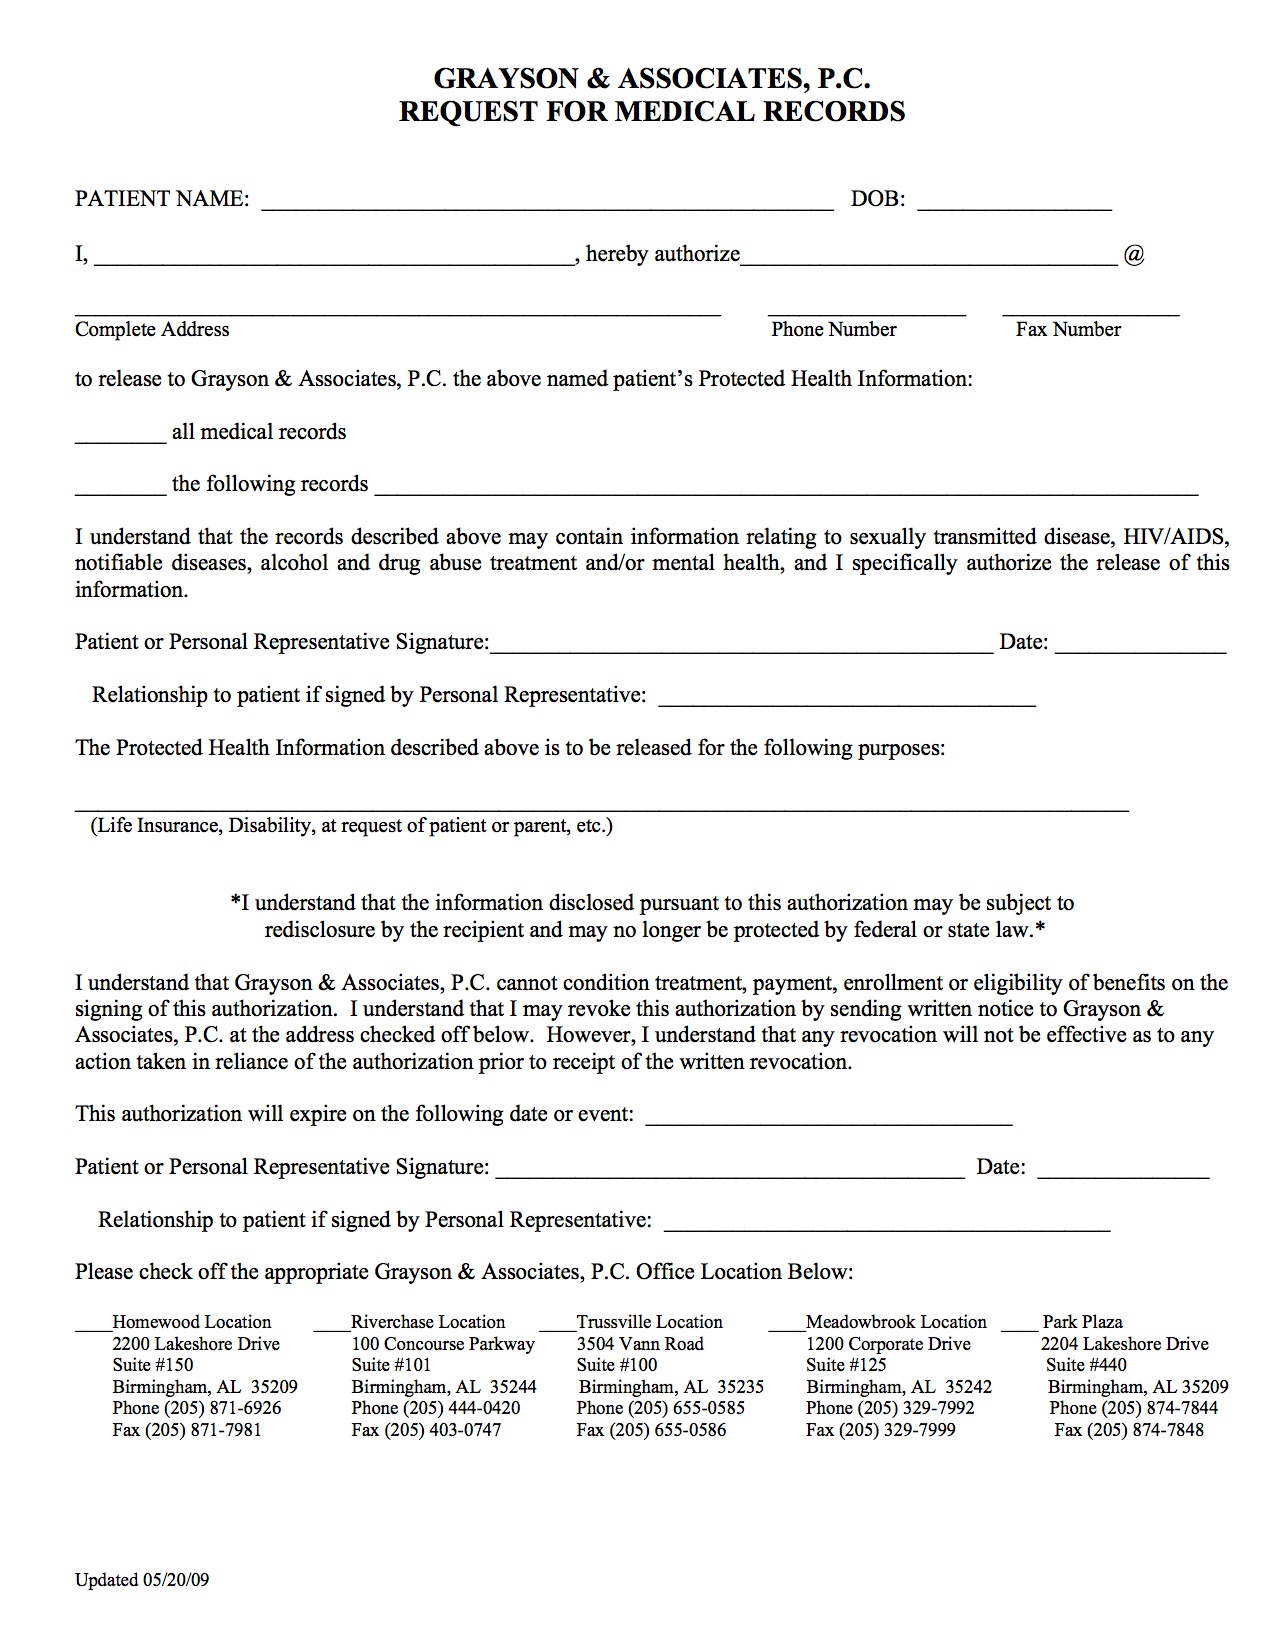 Forms - Request for Medical Records